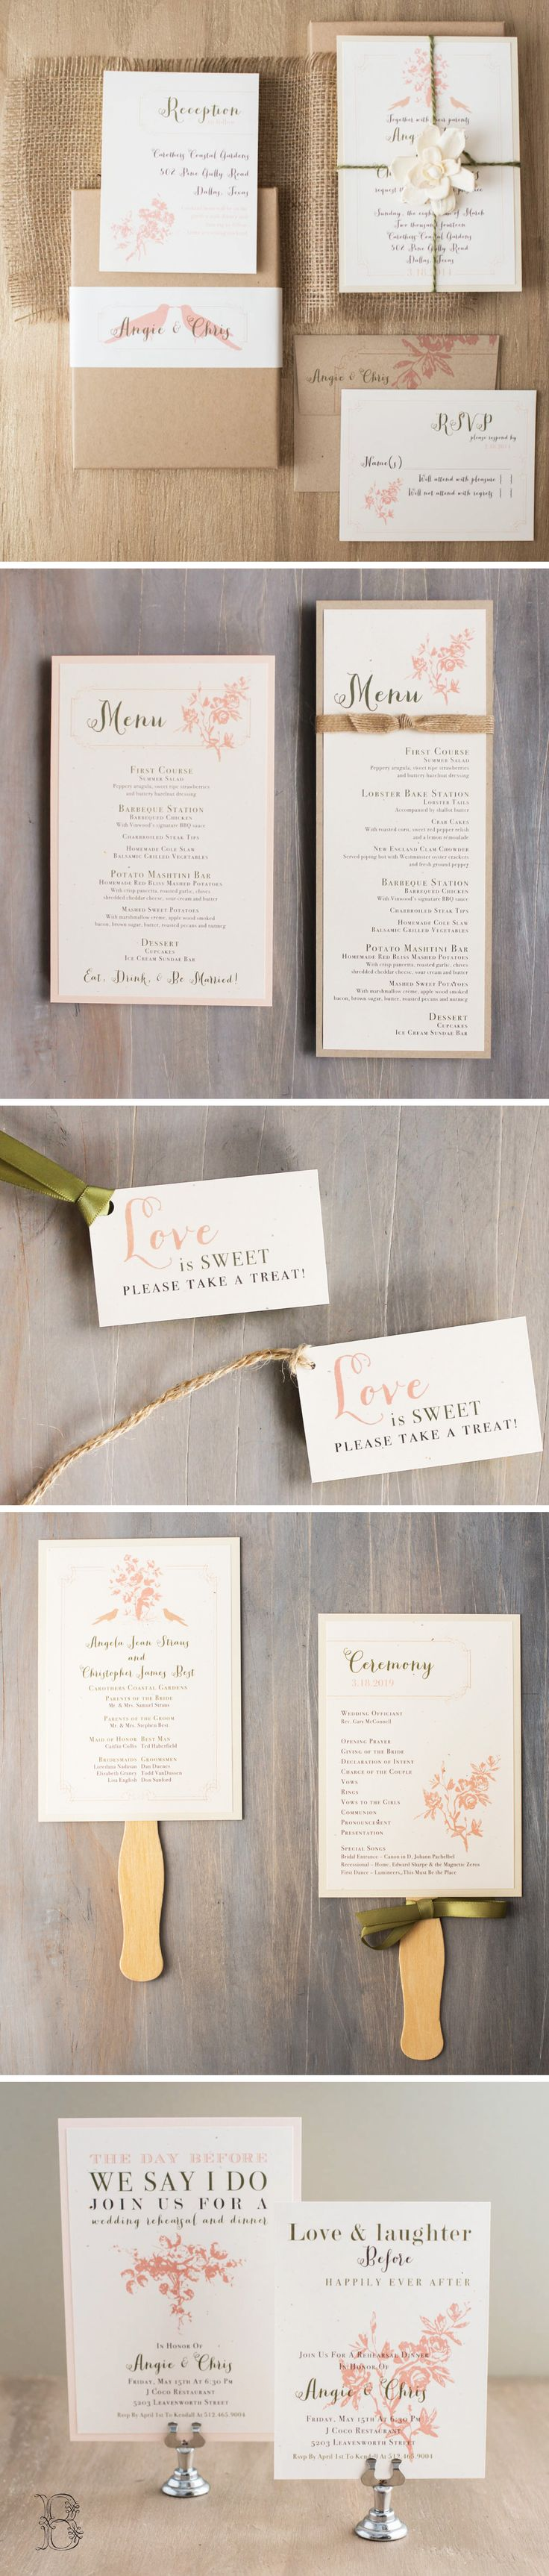 Rustic chic boxed wedding invites with taupe